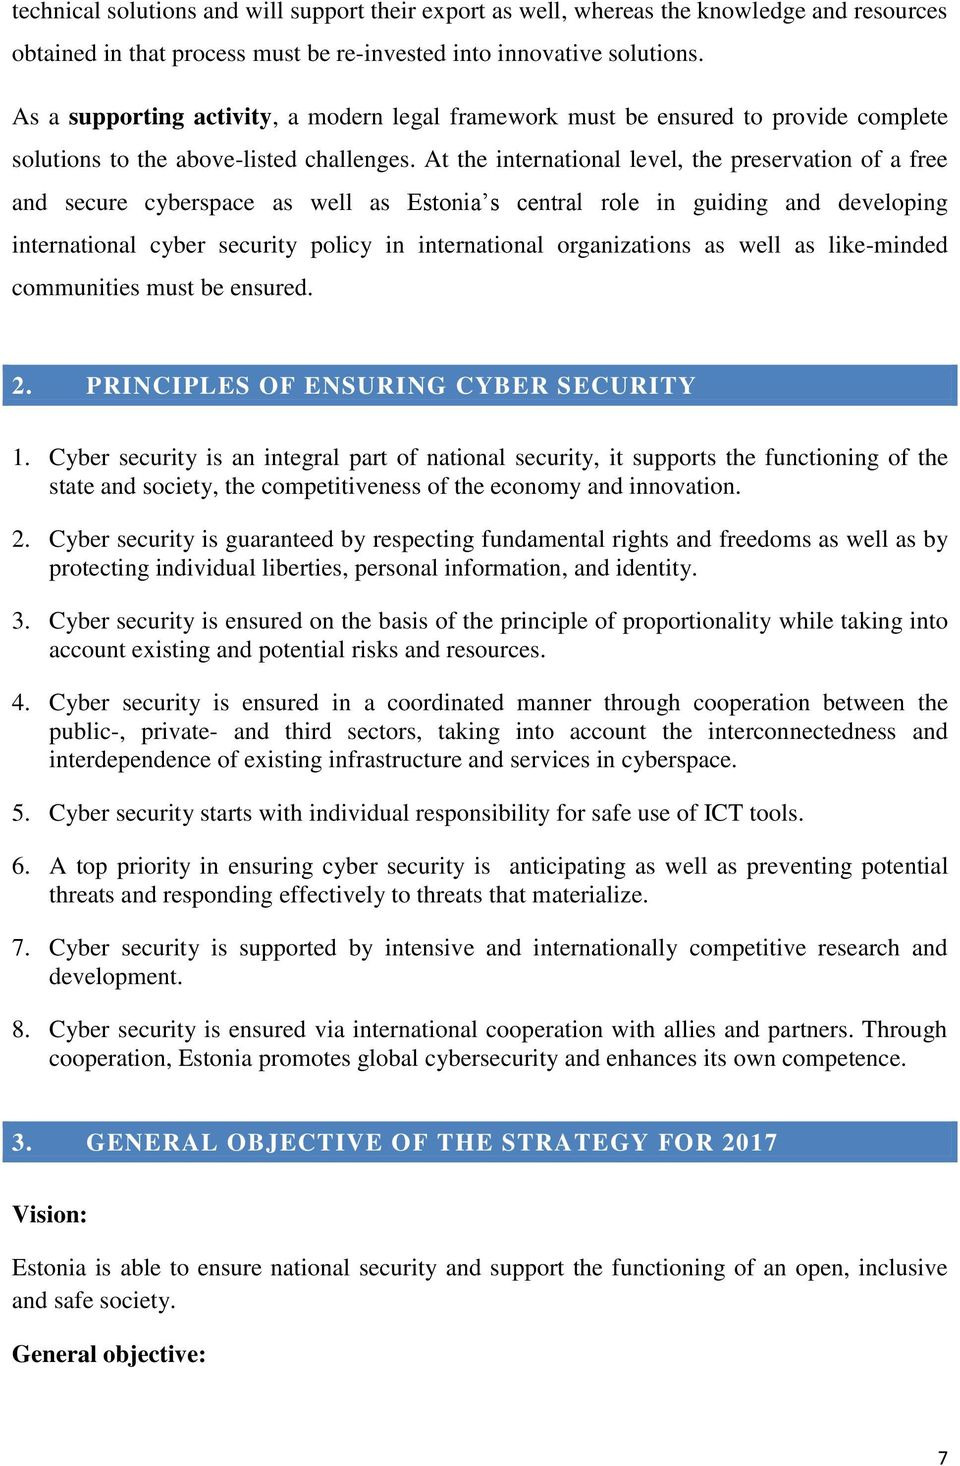 At the international level, the preservation of a free and secure cyberspace as well as Estonia s central role in guiding and developing international cyber security policy in international